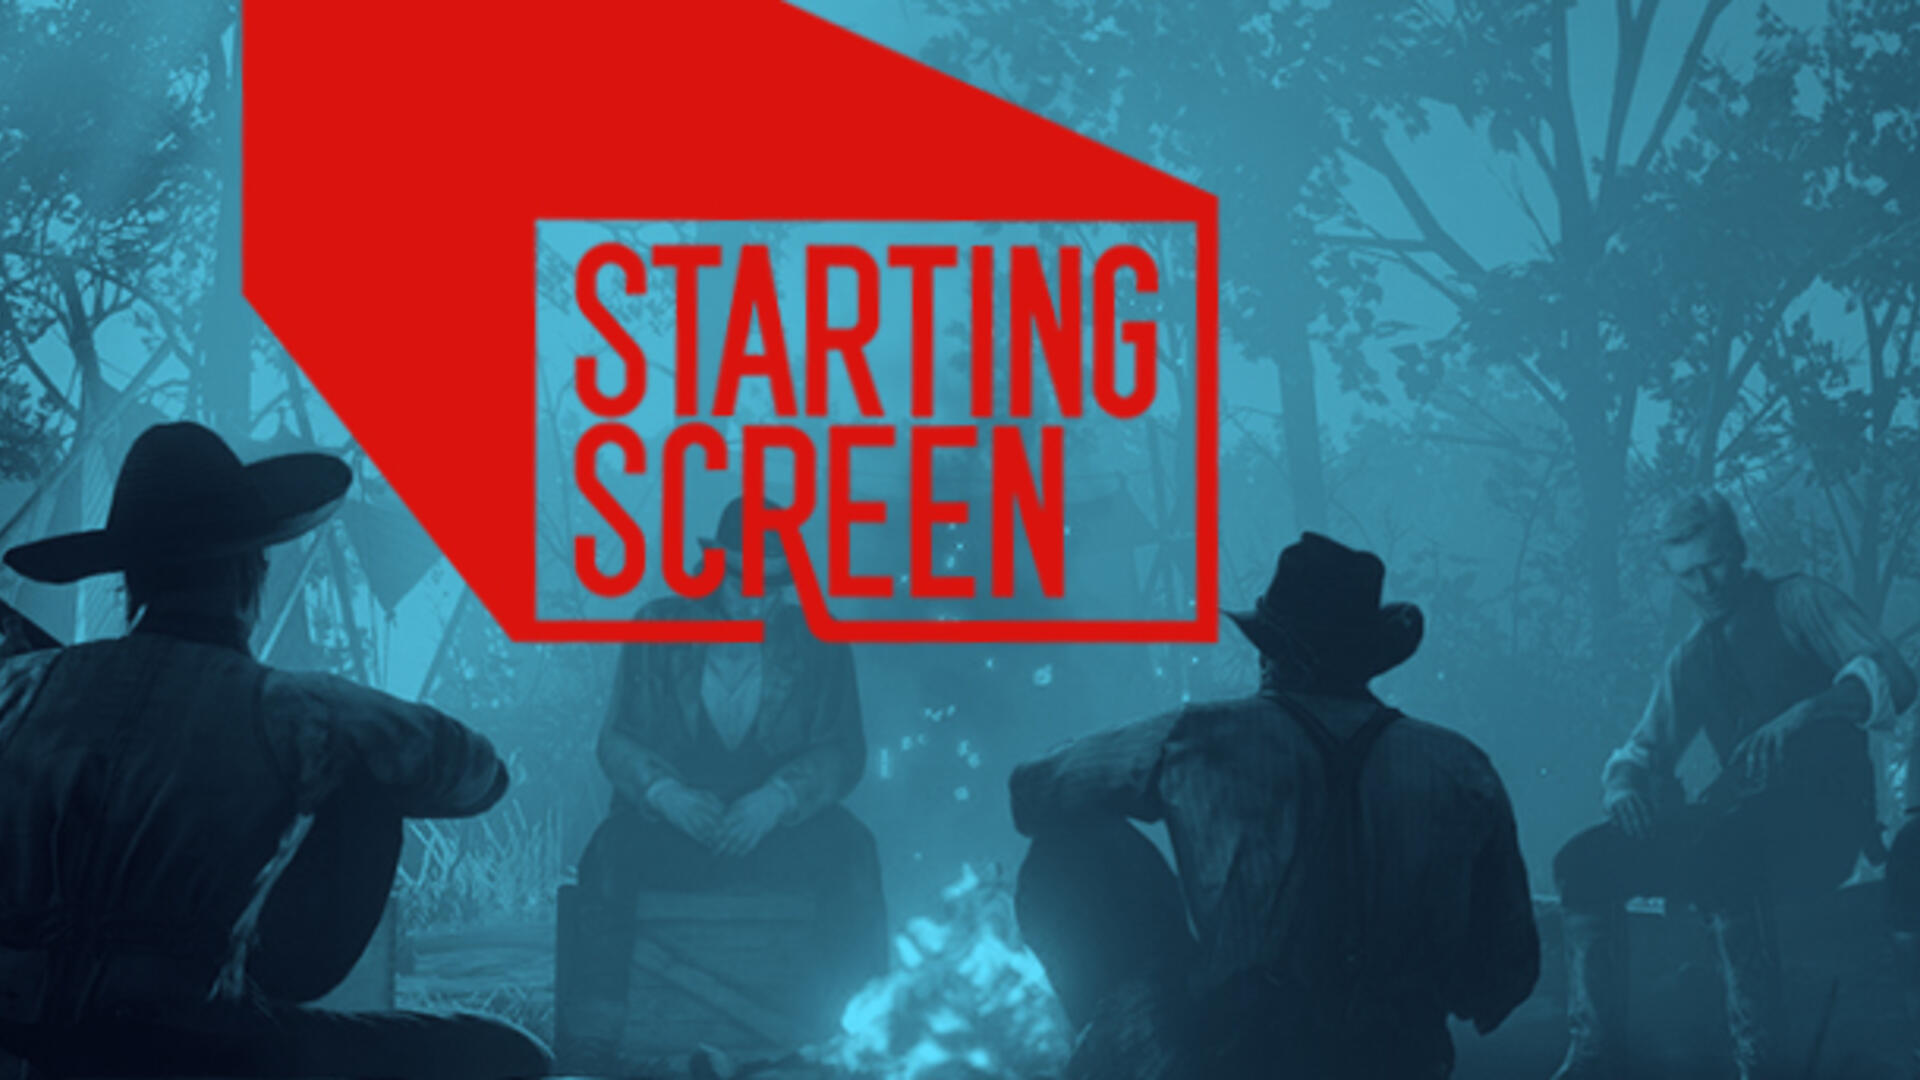 Can Red Dead Redemption 2 Avoid the Pitfalls of Being a Prequel?